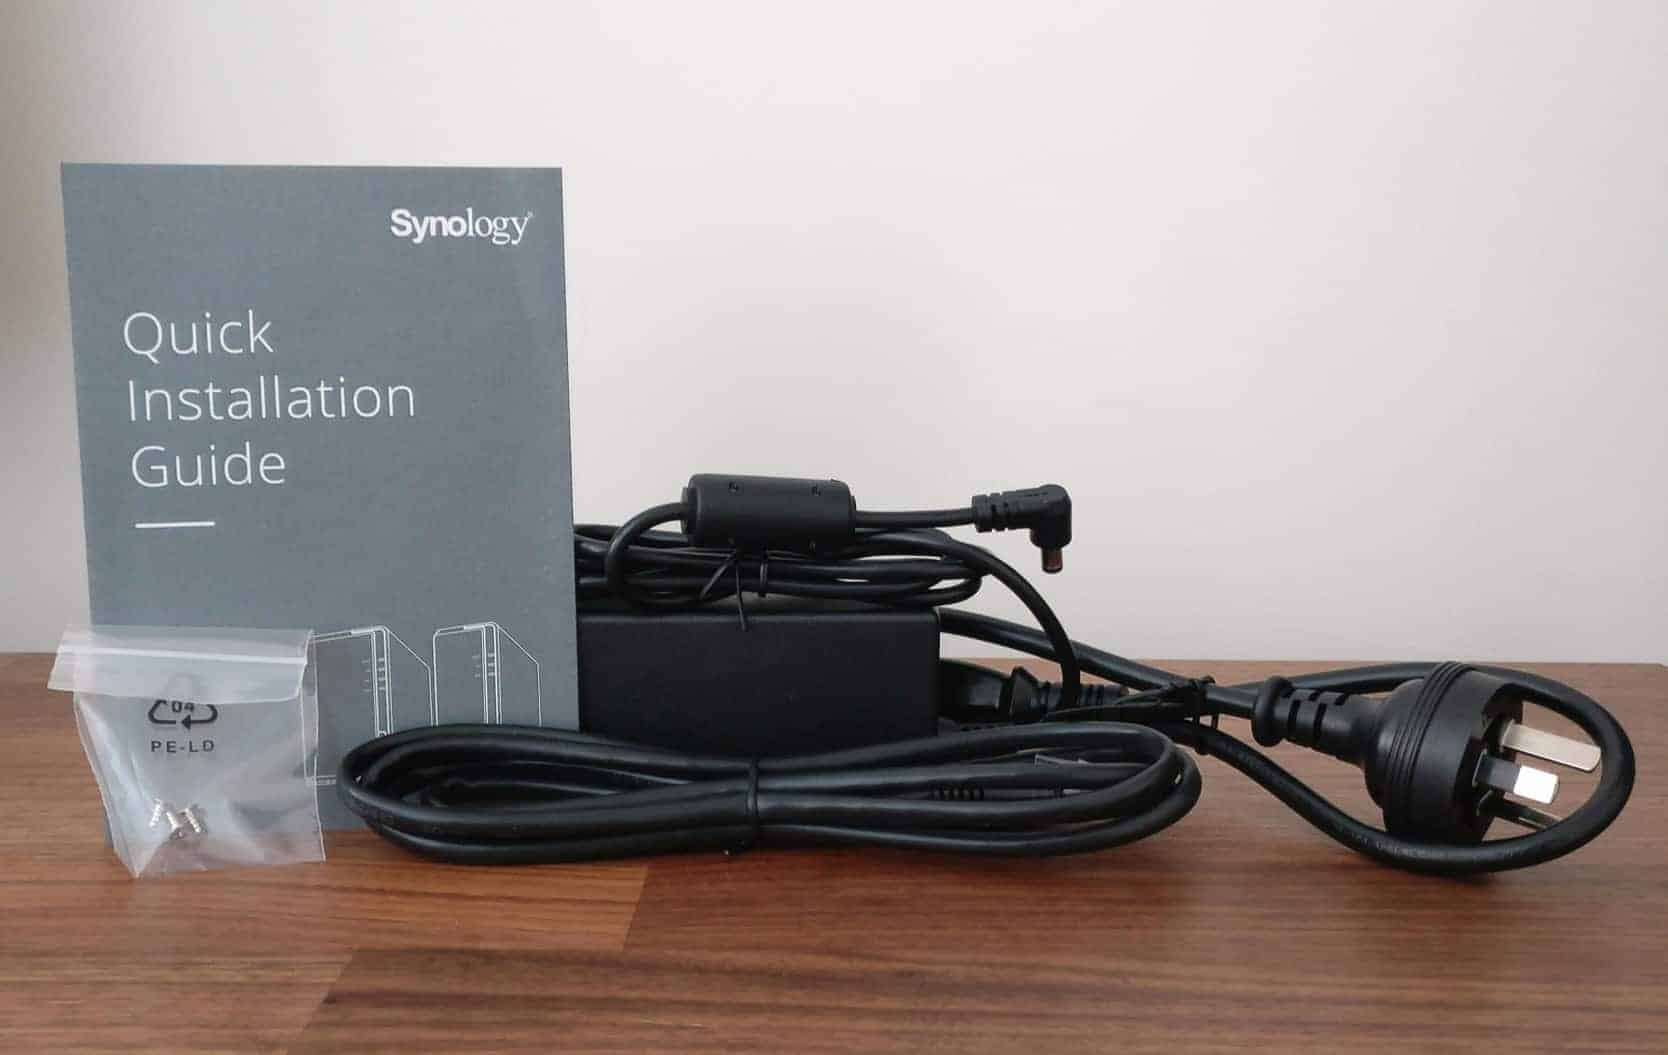 Synology DS216J 2 Bay NAS Review - The Perfect Backup